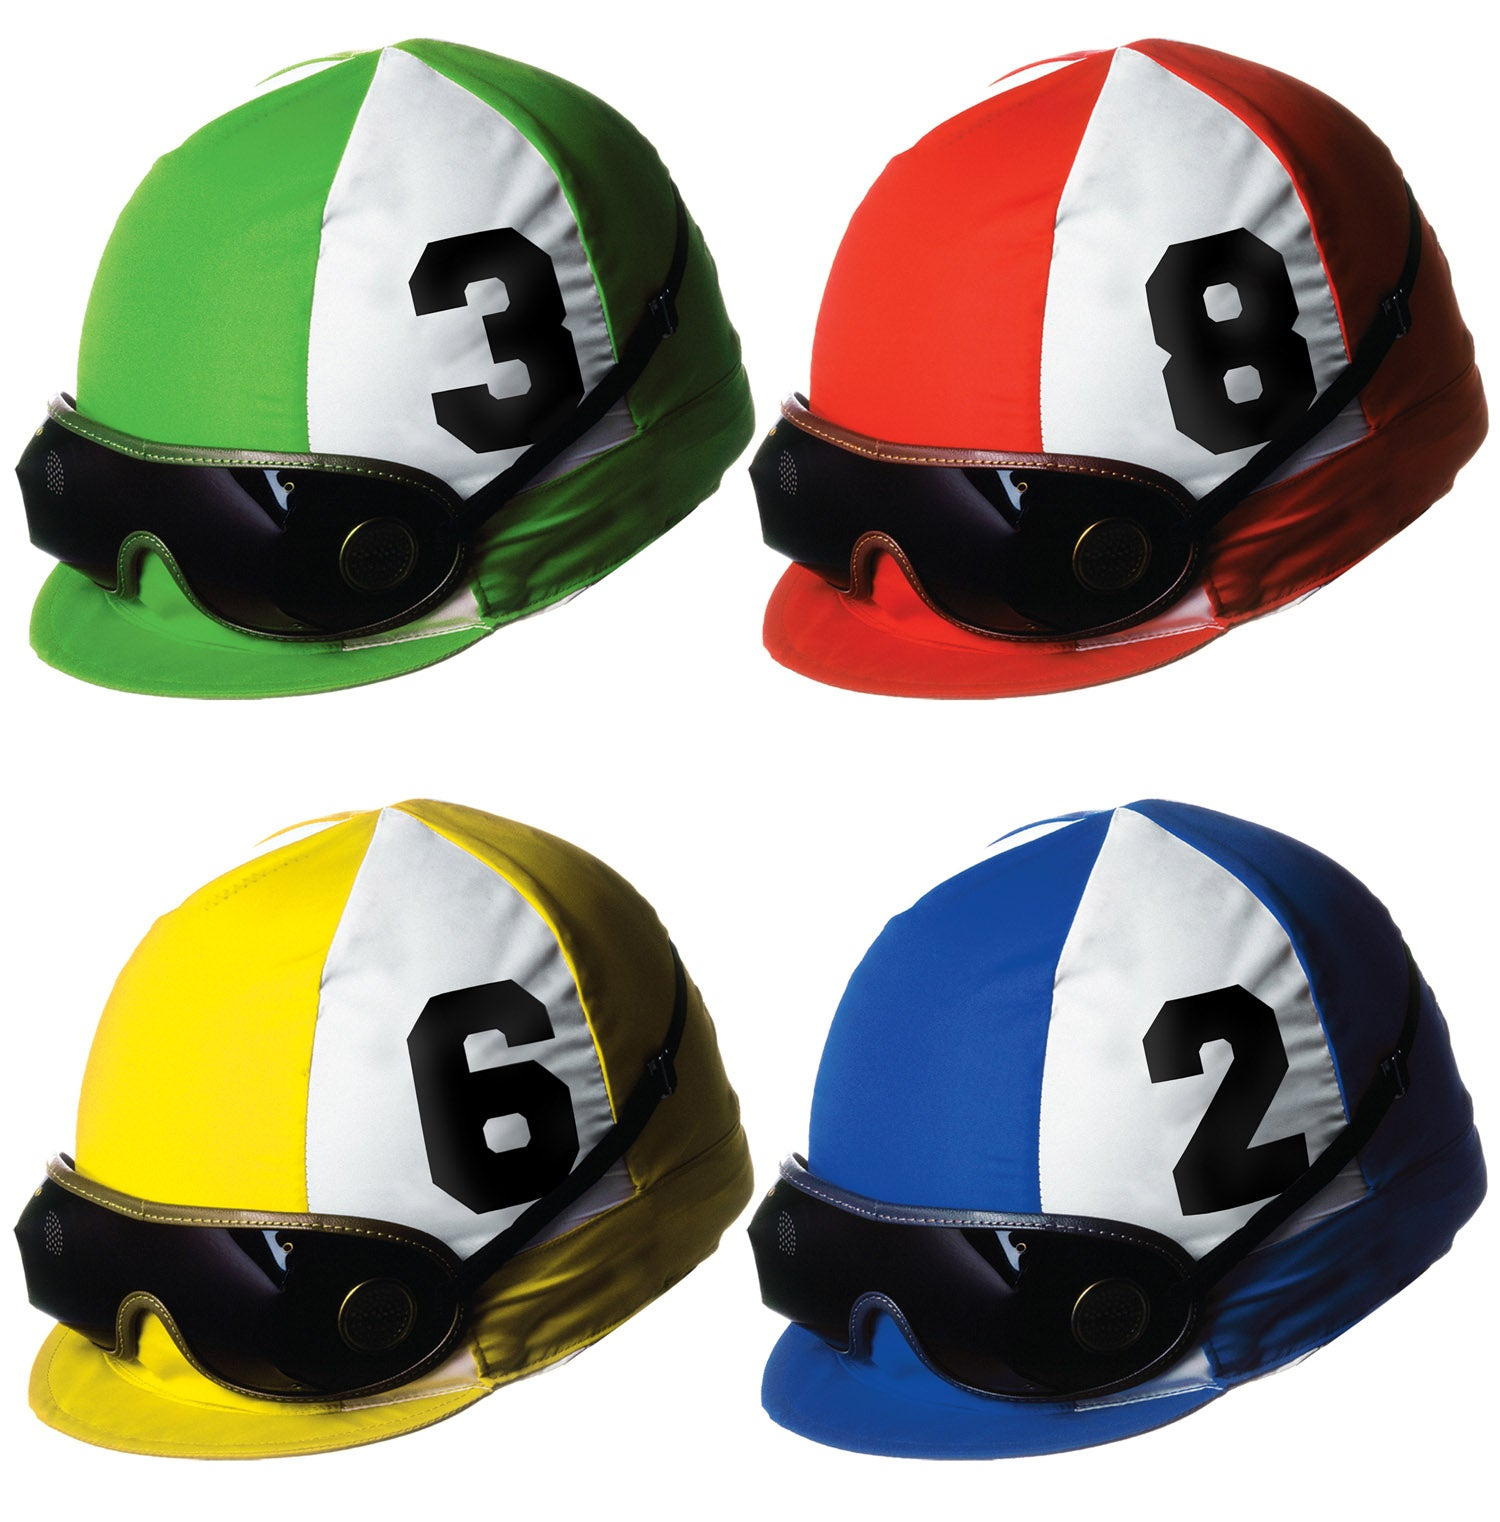 Jockey Helmet Cutouts (4/Pkg) by Beistle - Derby Day Theme Decorations